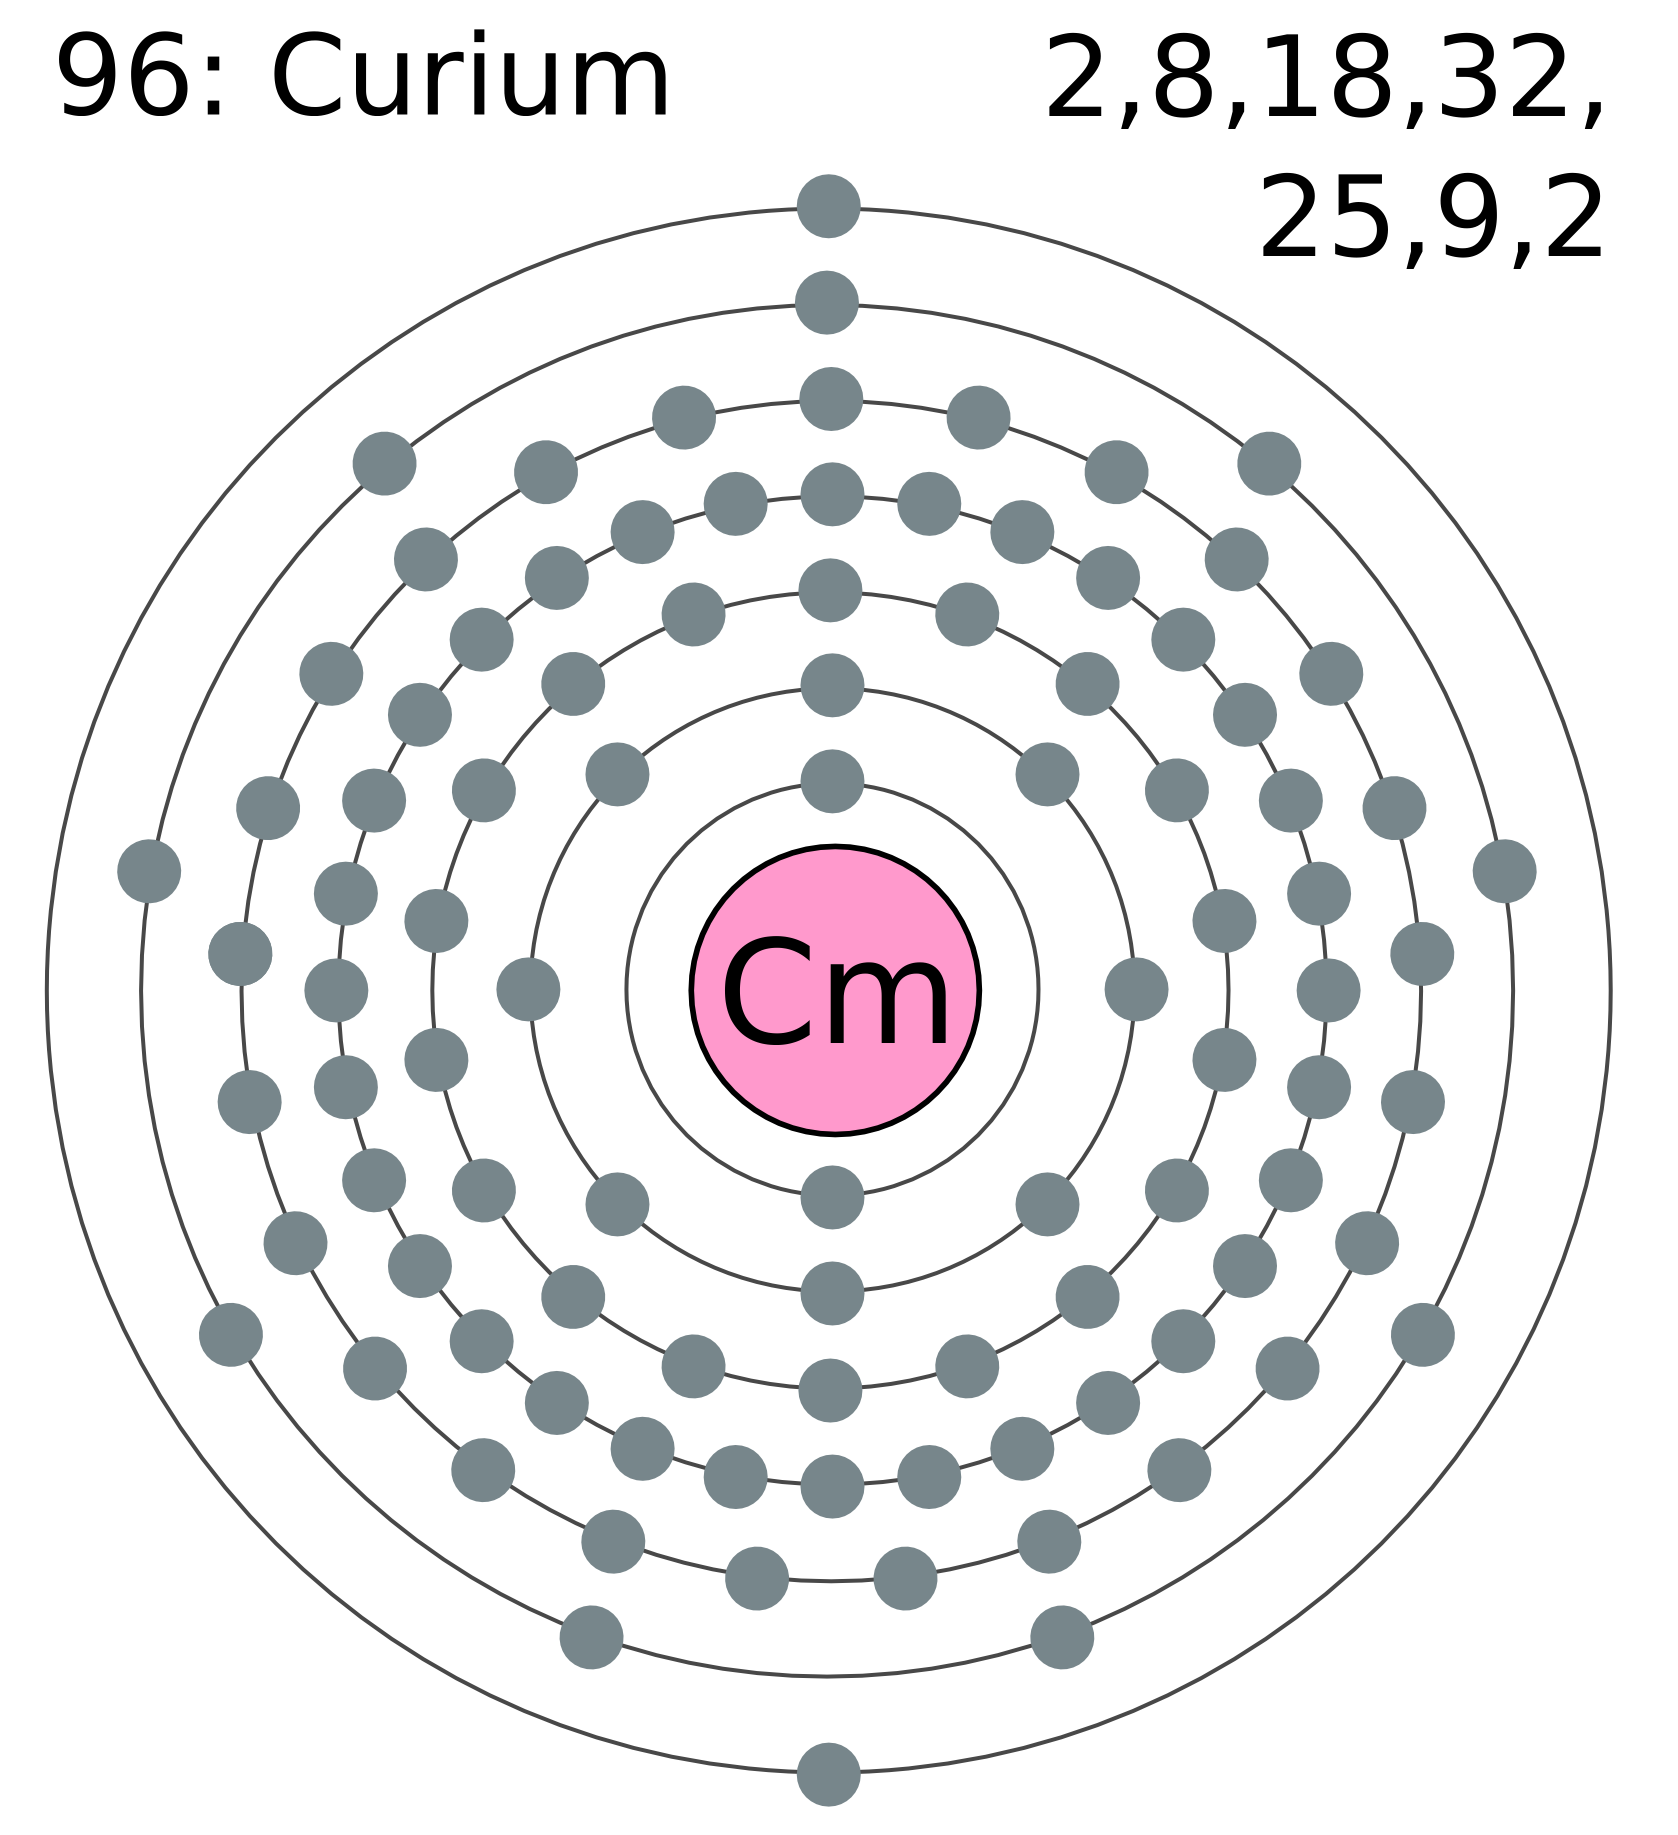 man made element curium possible rough draft idea for tattoo  [ 1678 x 1835 Pixel ]